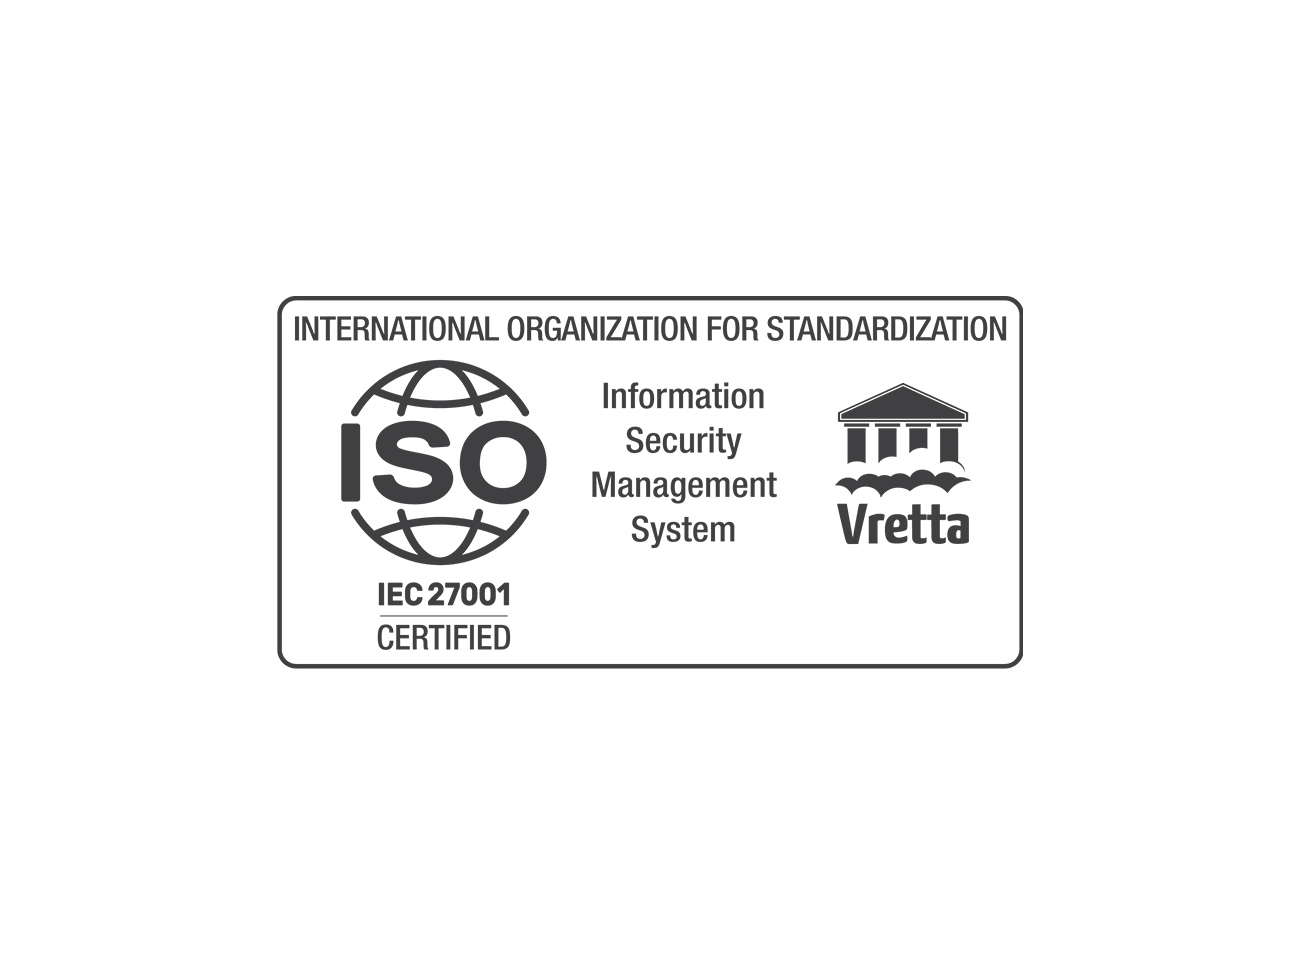 Vretta Achieves ISO/IEC 27001 Certification for their Information Security Management System